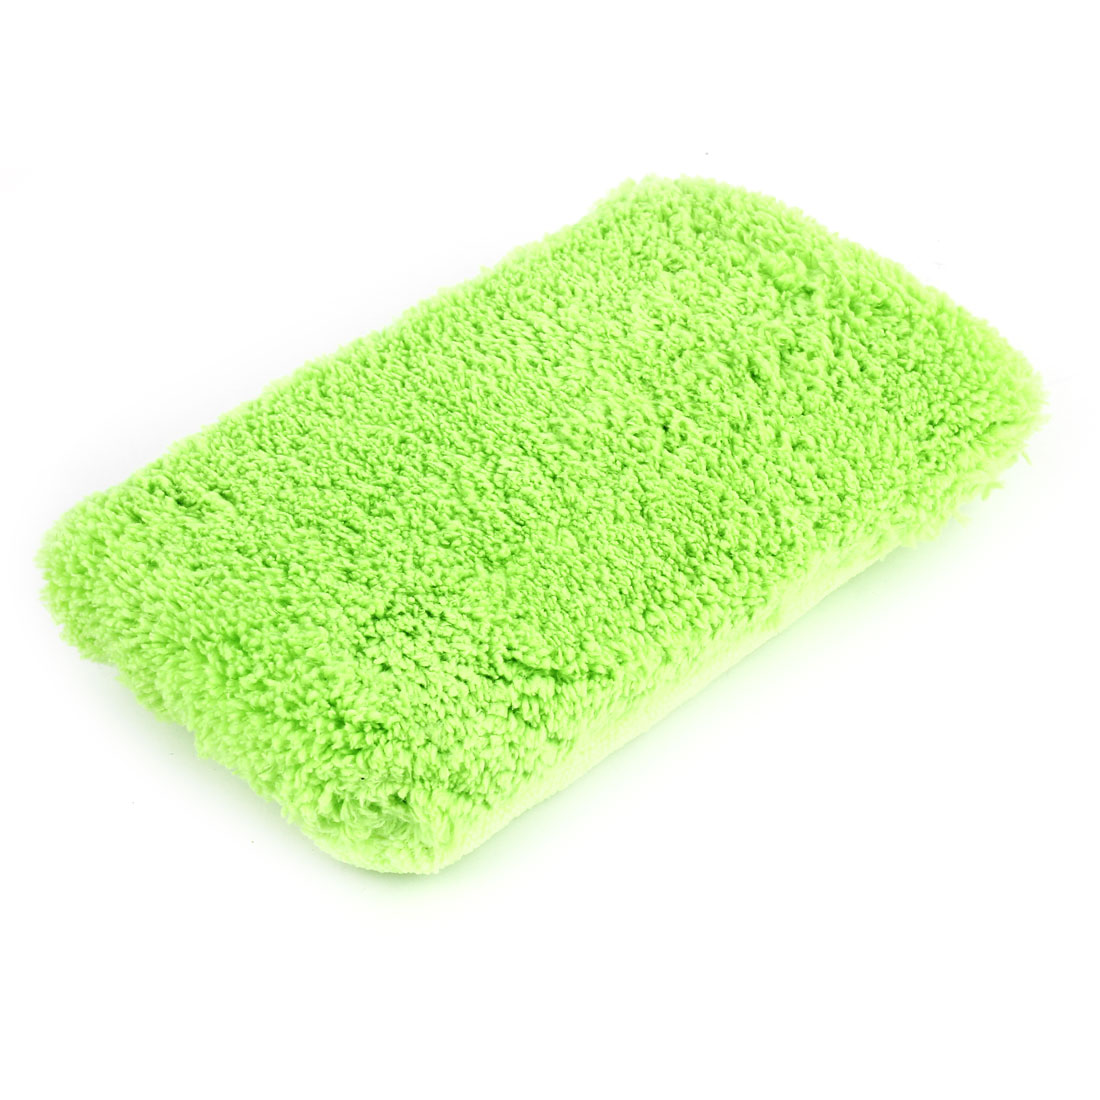 Car Vehicles 2 in 1 Washing Drying Microfiber Sponge Pad Cusion Green 10x19cm